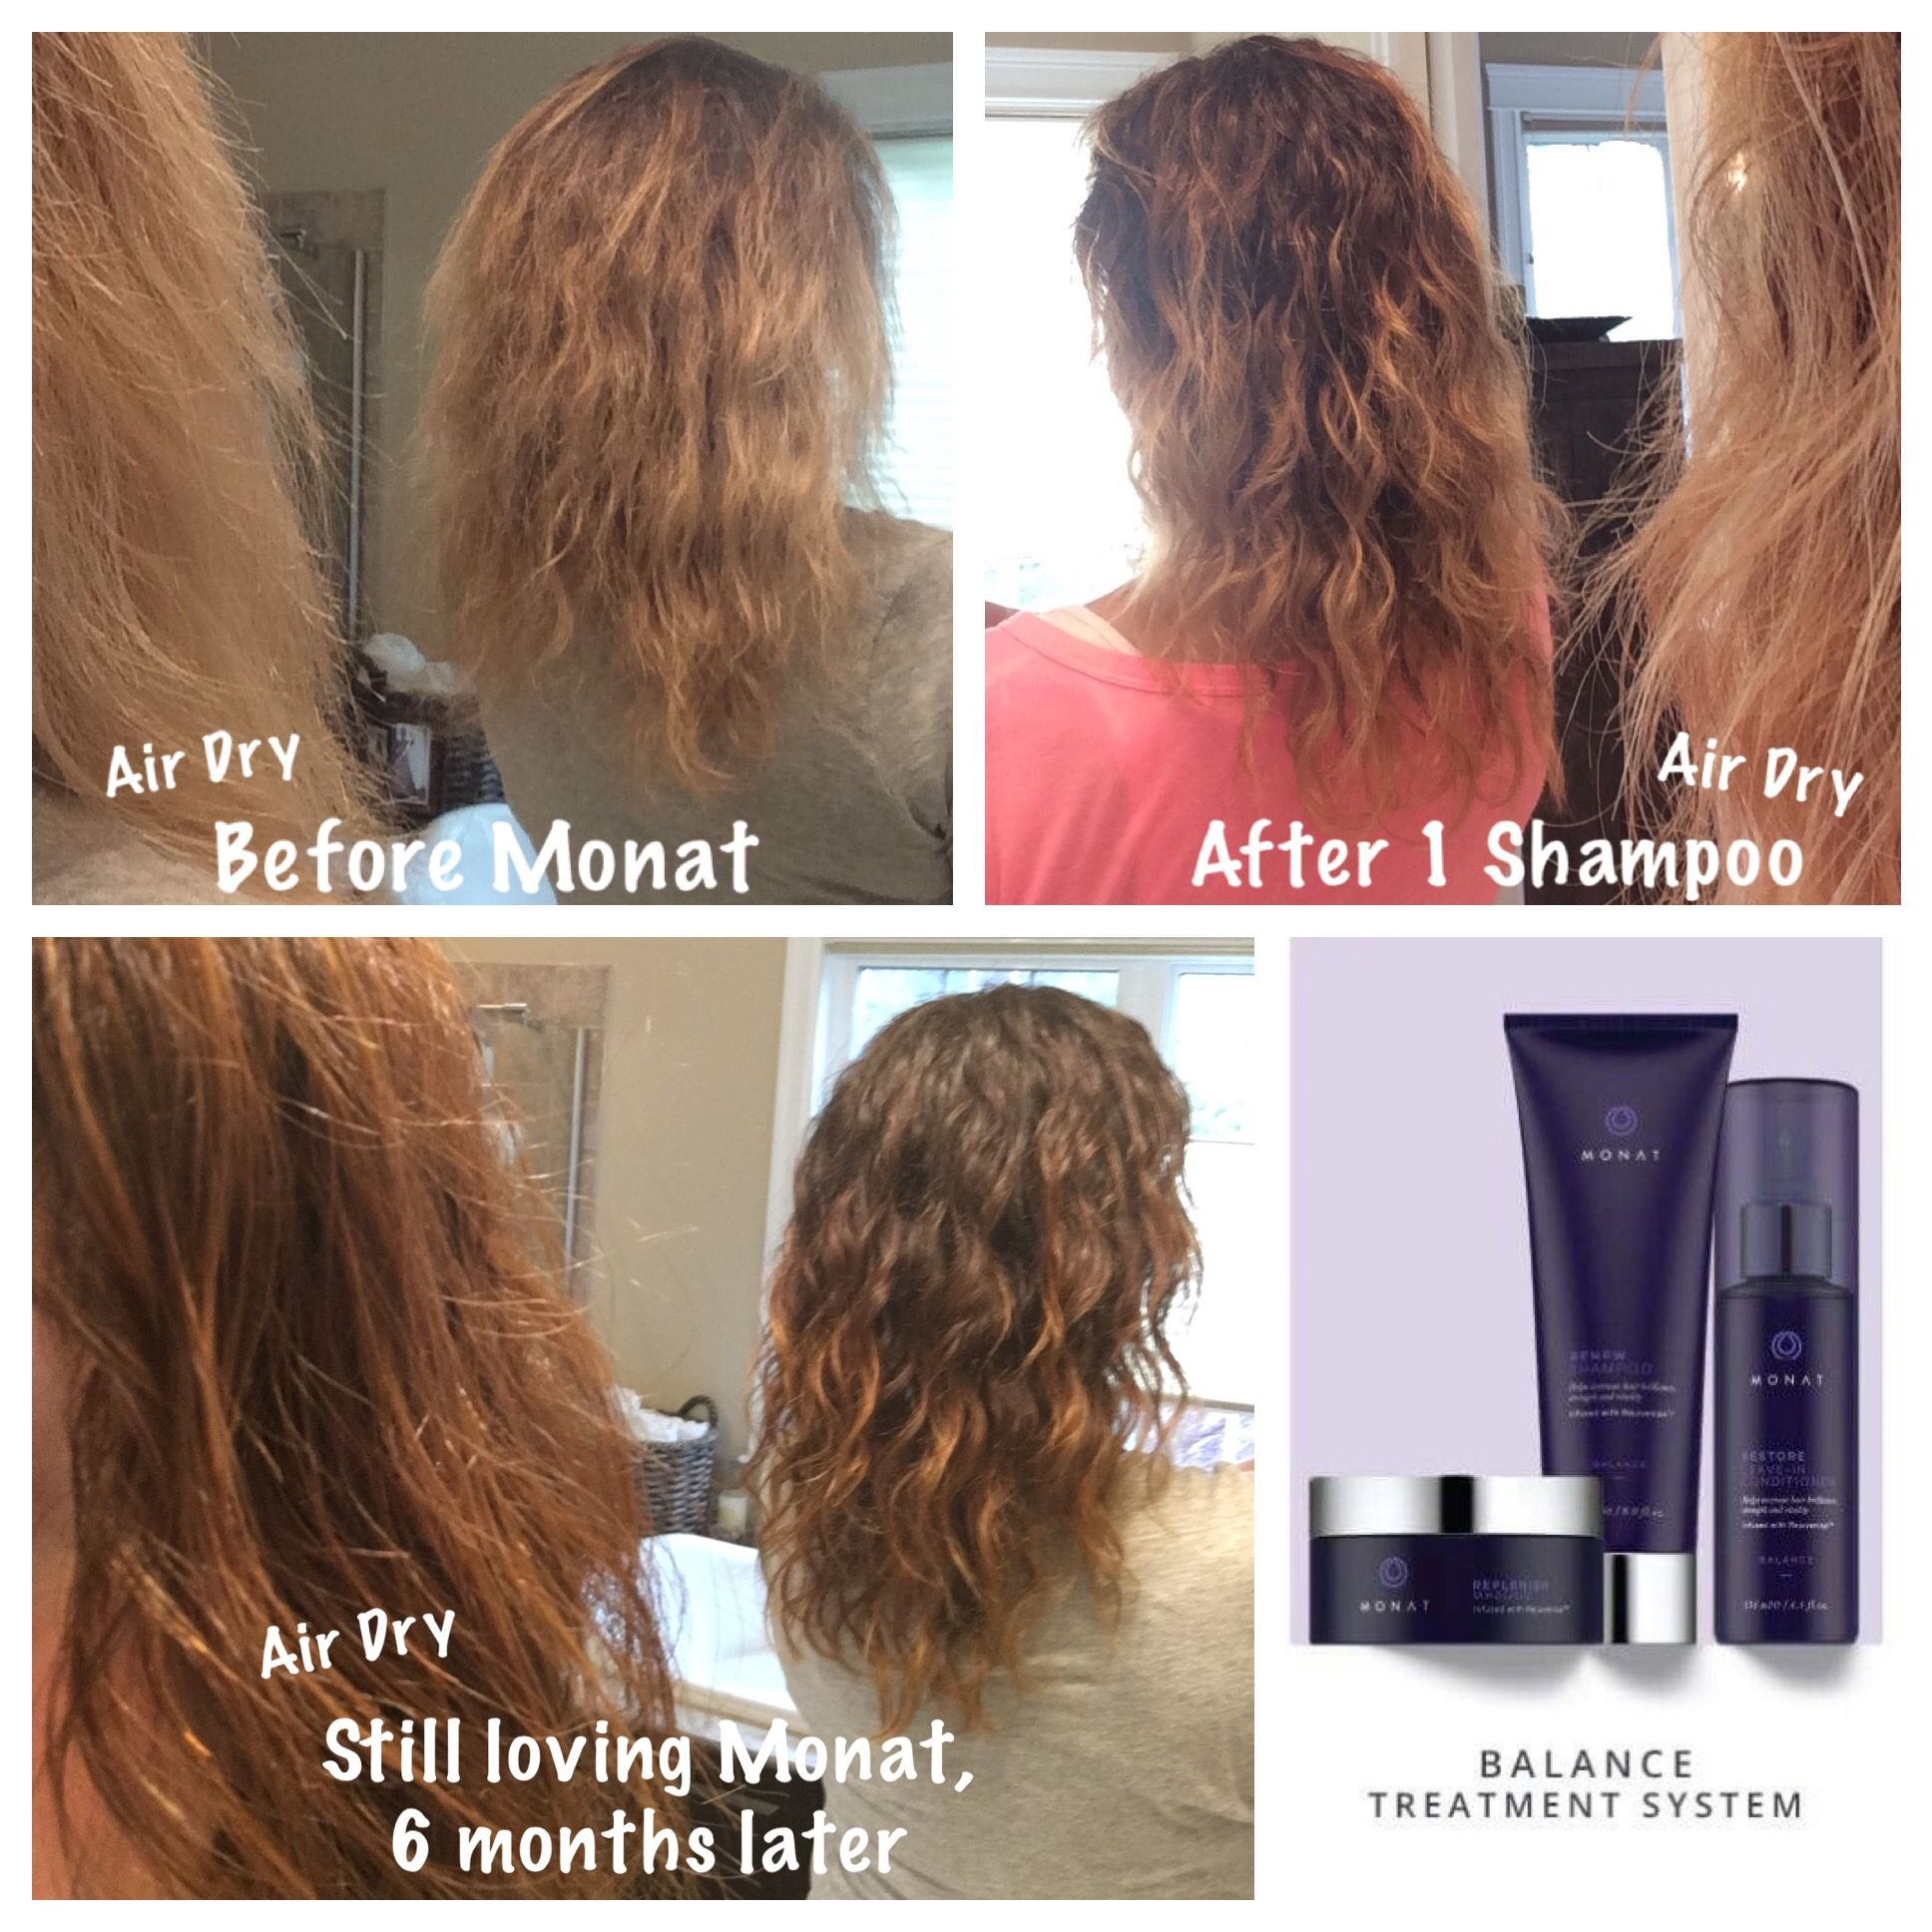 Damaged hair, breakage, dry itchy scalp, hair loss. These ...